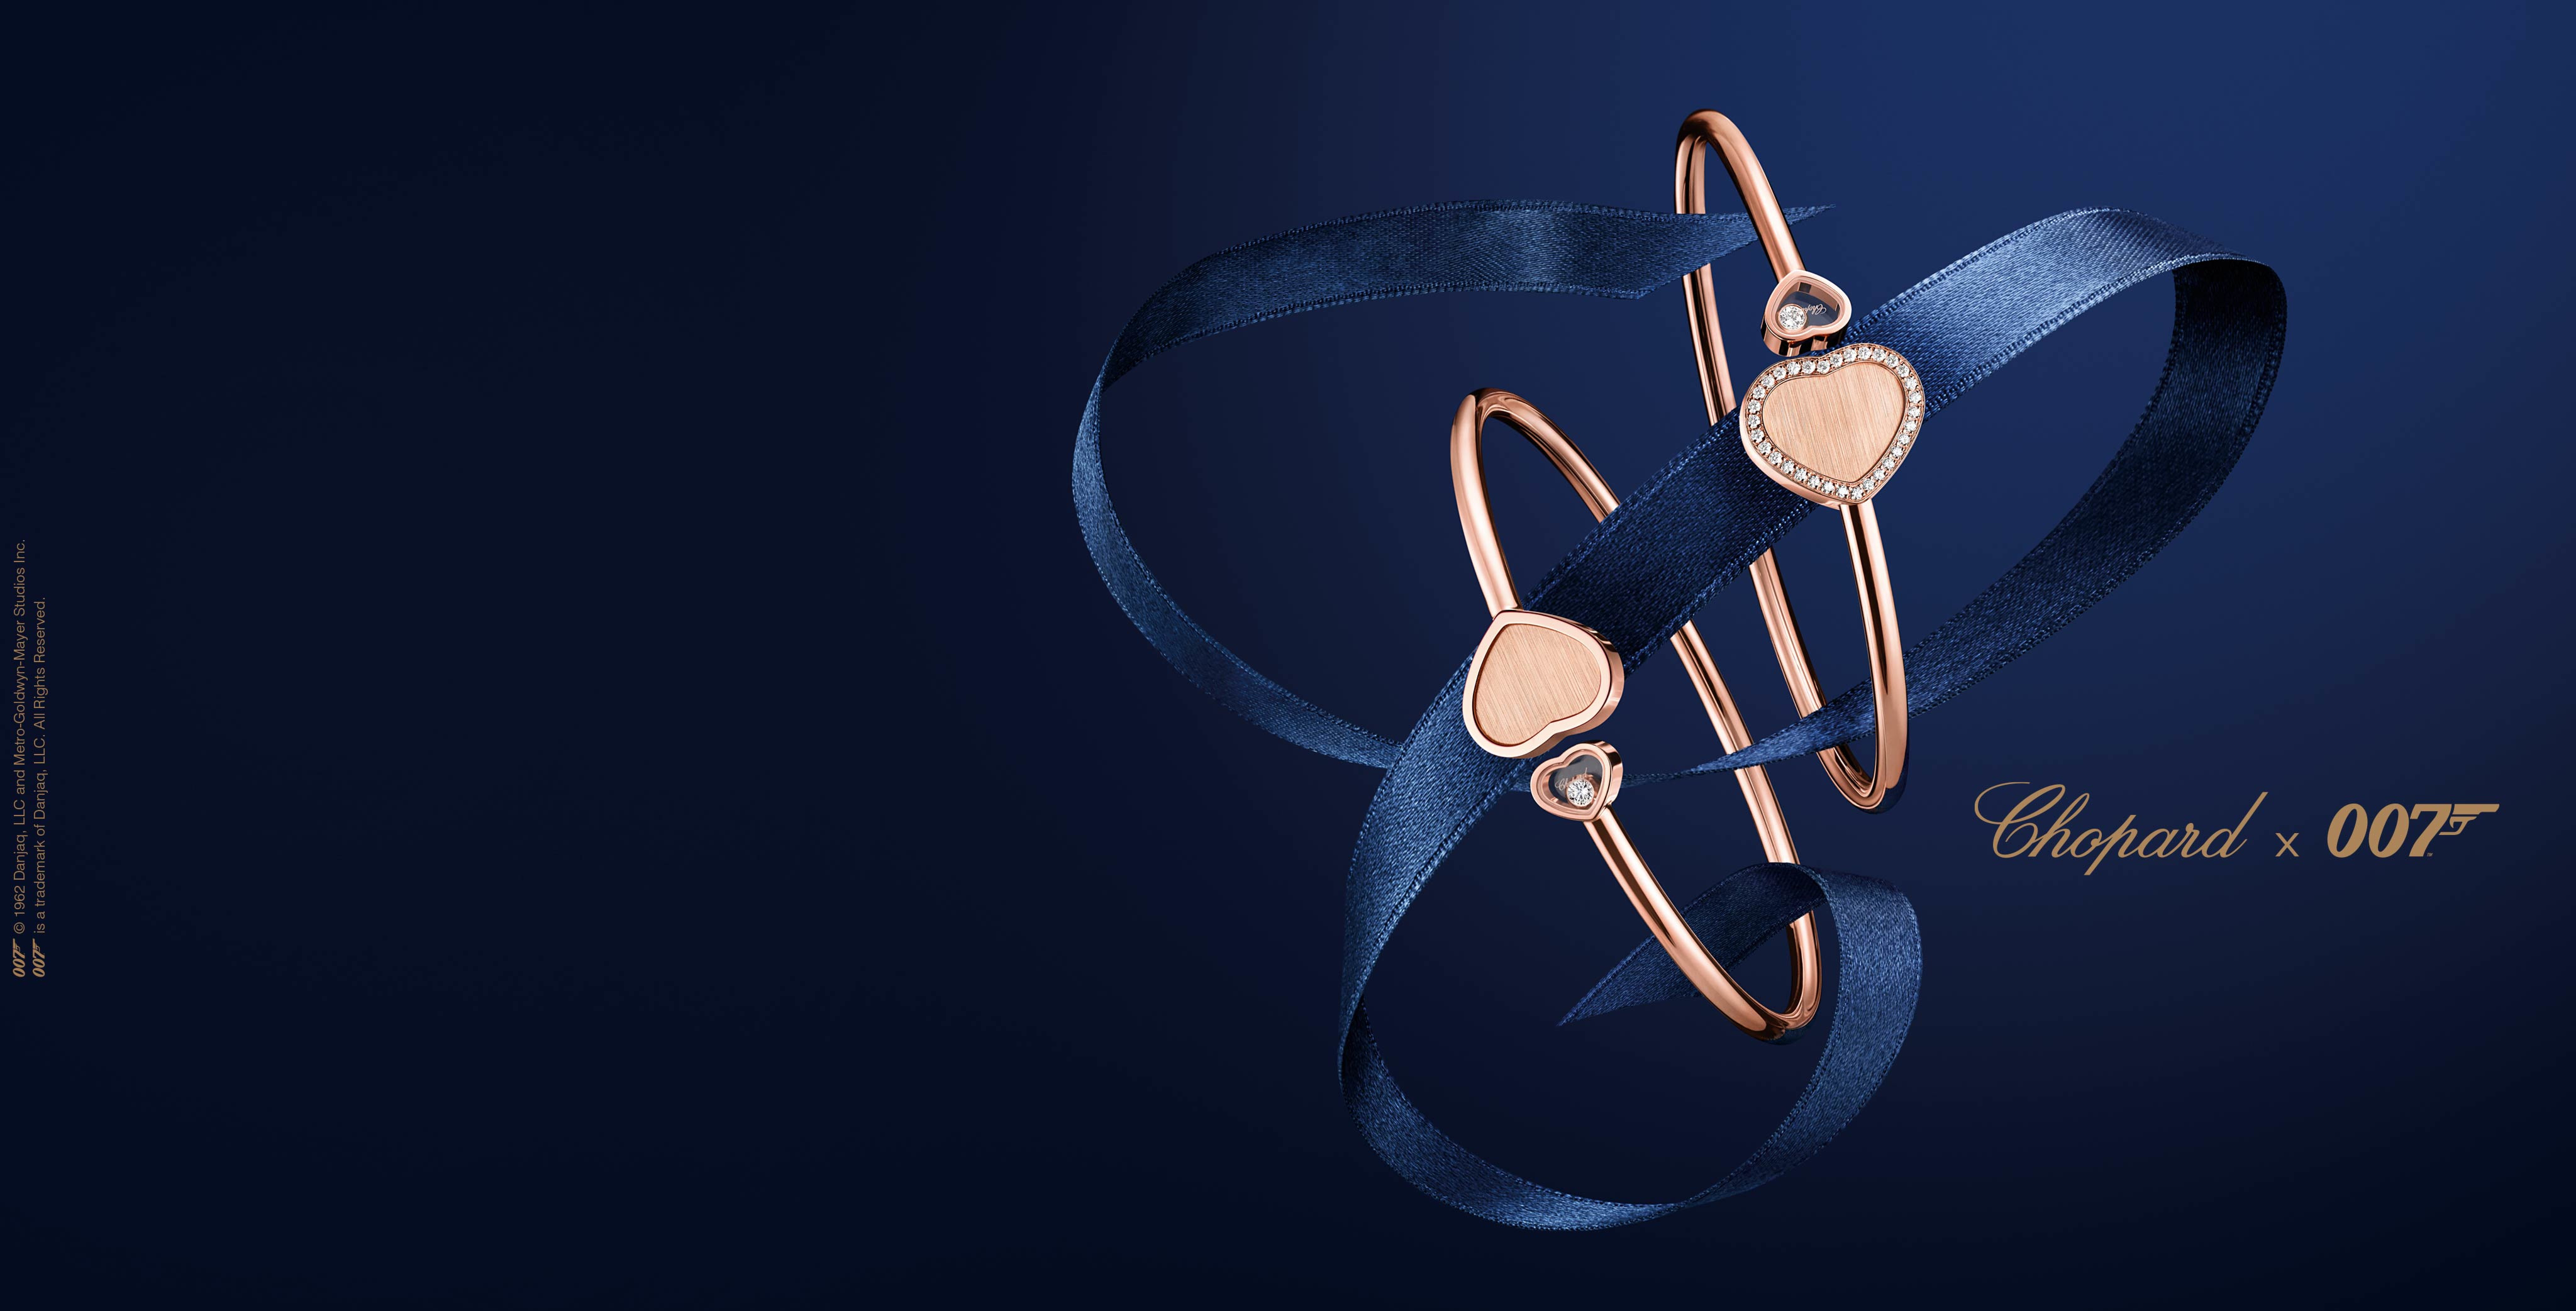 Two Golden Hearts bracelets entangled in a ribbon forming the famous C from Chopard, over a dark blue background.